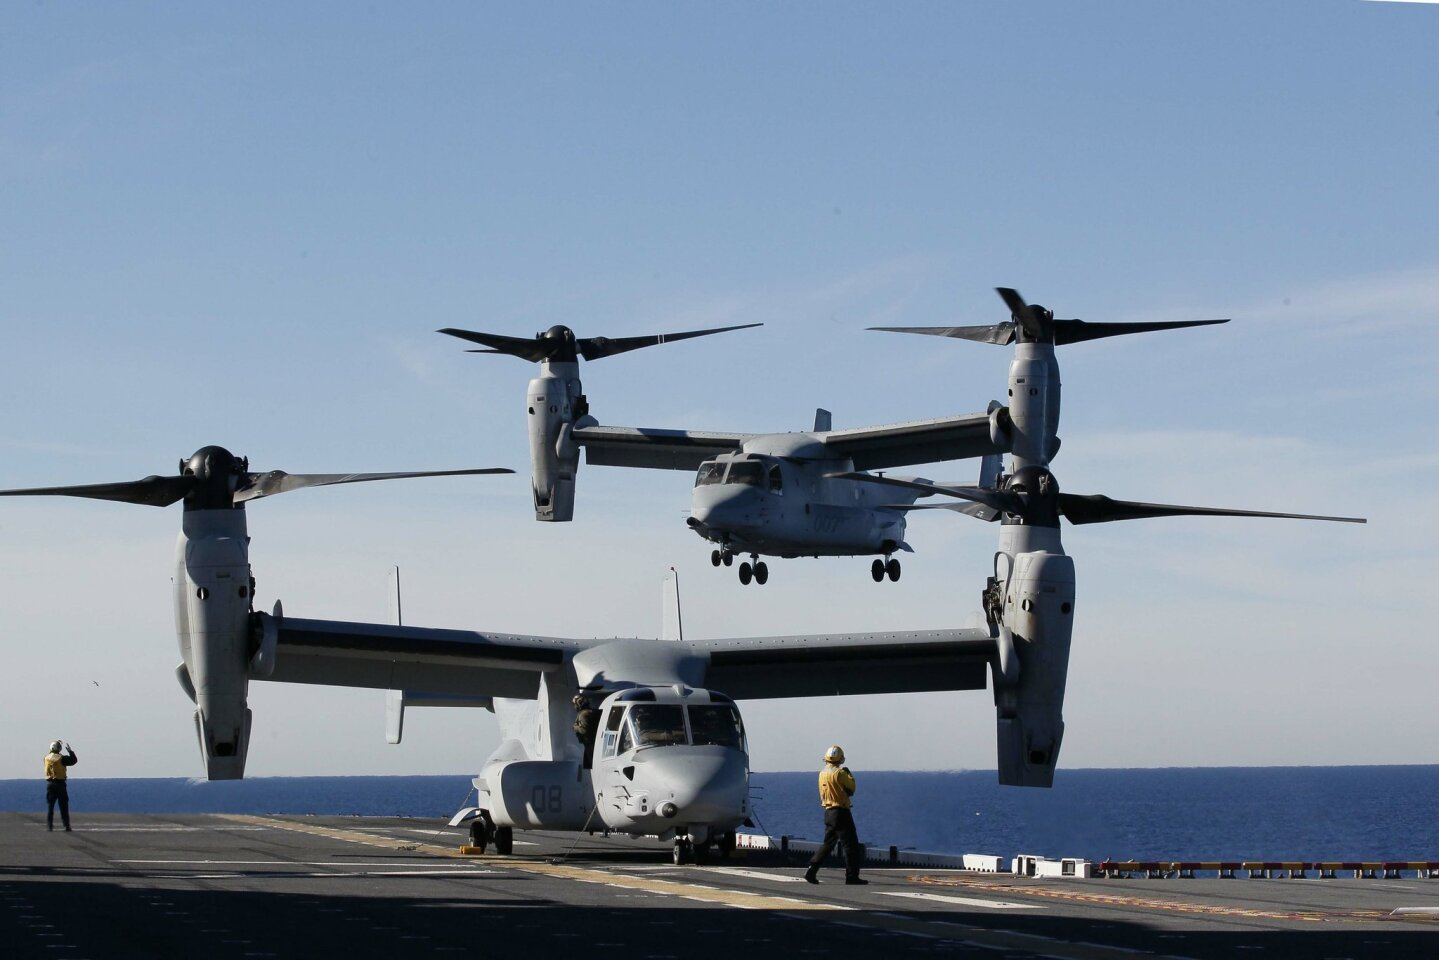 A V-22 Osprey carrying Secretary of Defense Chuck Hagel landed aboard the USS America on Wednesday, January 14, 2015.  Hagel is making a farewell tour, visiting with all branches of the military.  He is leaving the president's cabinet as soon as a replacement is named.